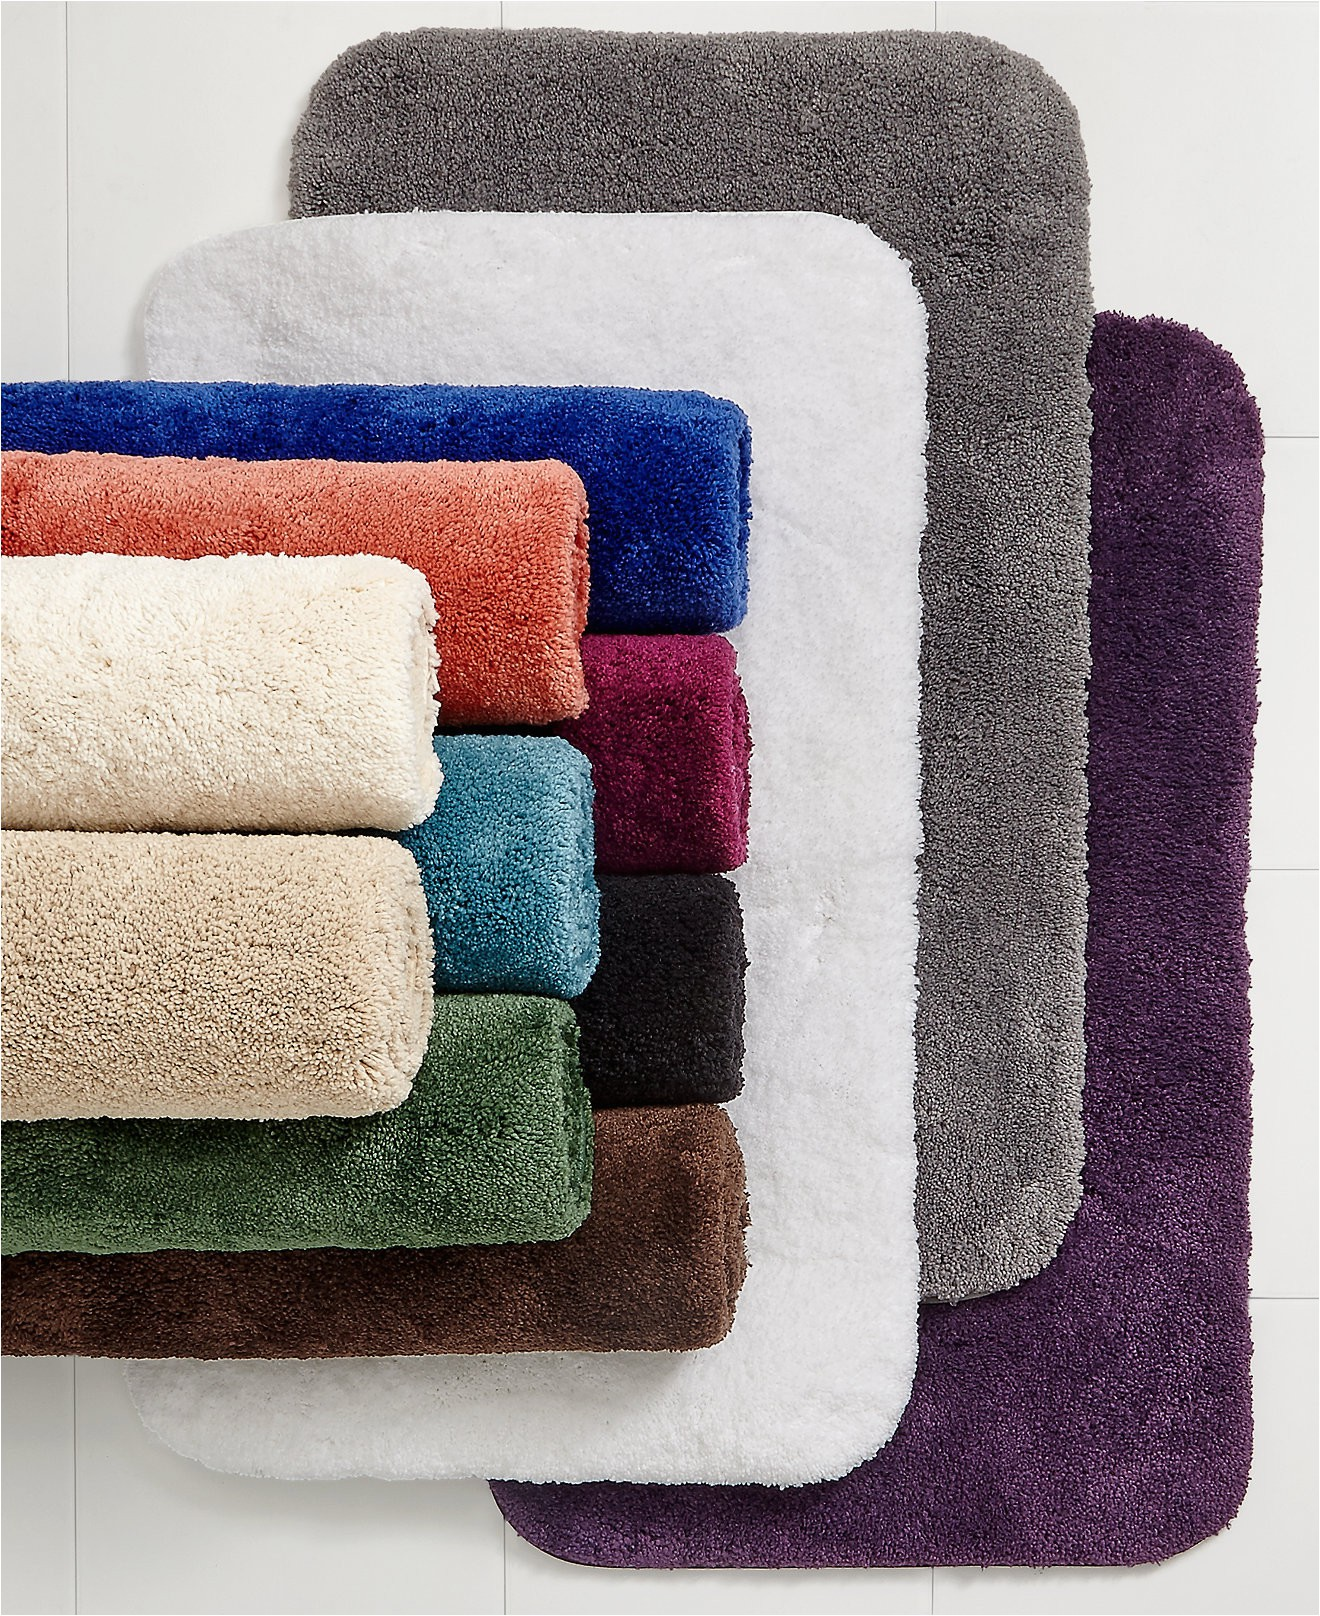 Jcpenney Home Ultima Bath Rug Collection Jcpenney Bathroom Rugs Image Of Bathroom and Closet